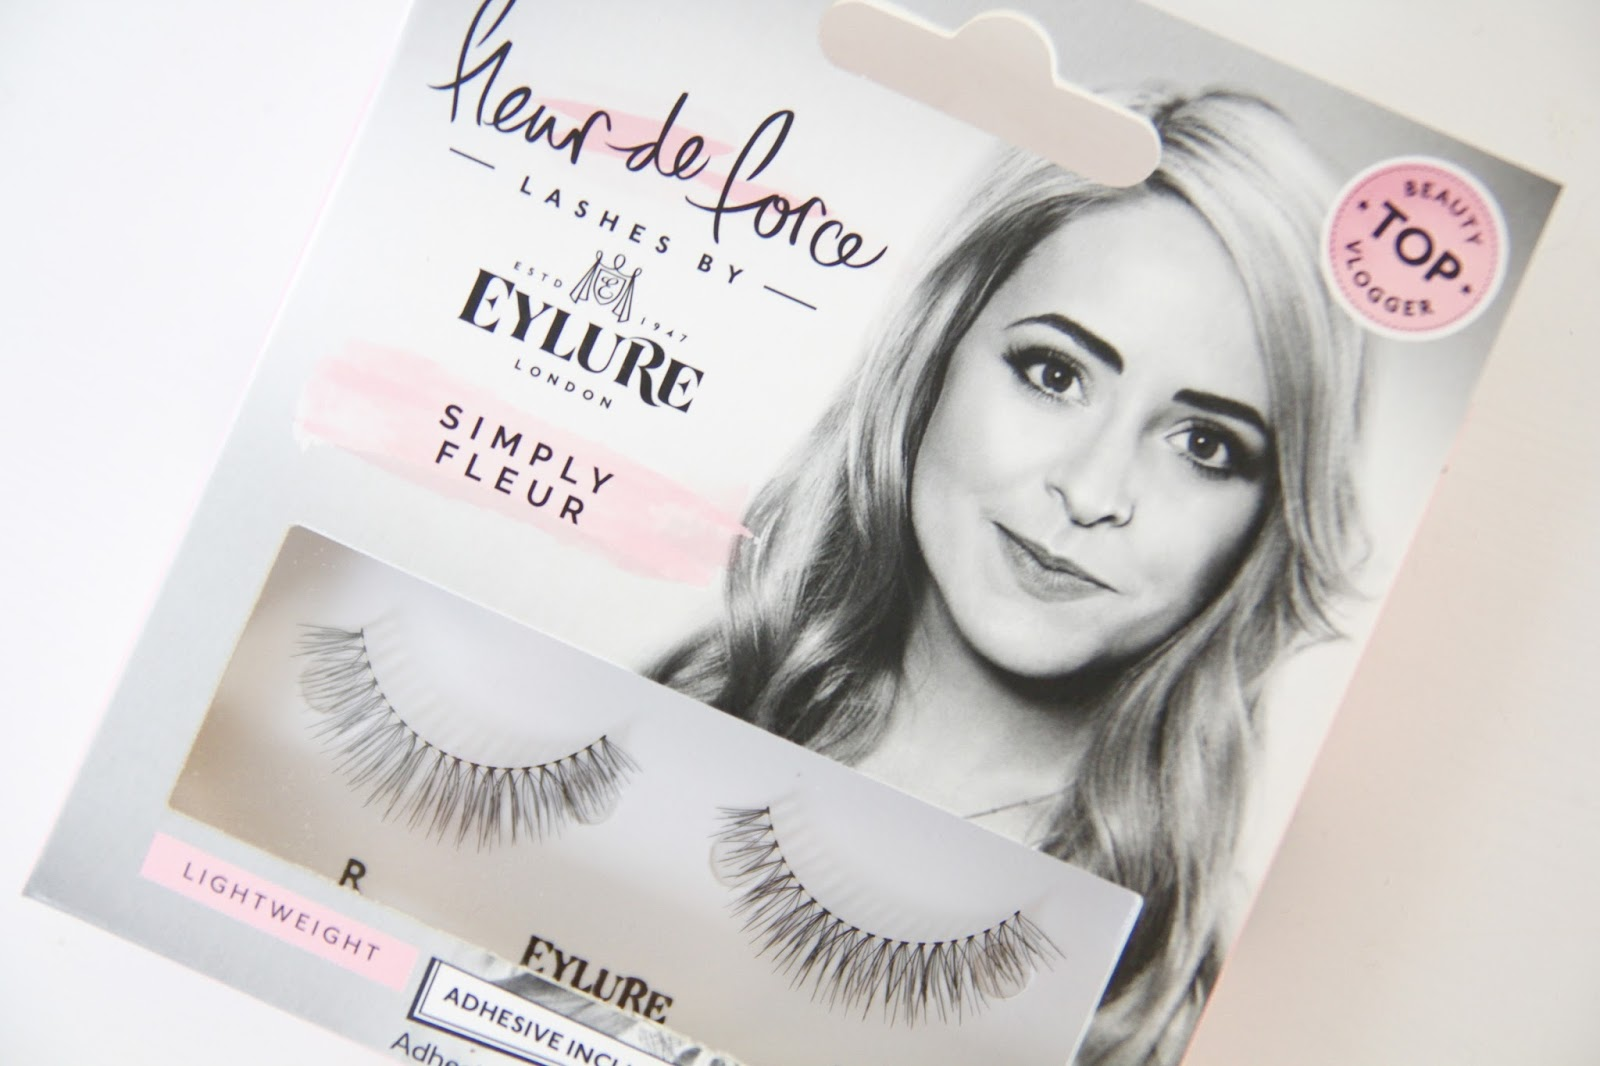 afdf7811bf3 'Couture Fleur' – Next up for the individuals. I've been obsessed with  Eylure's indiviual cluster lashes for quite some time now, but I always end  up using ...